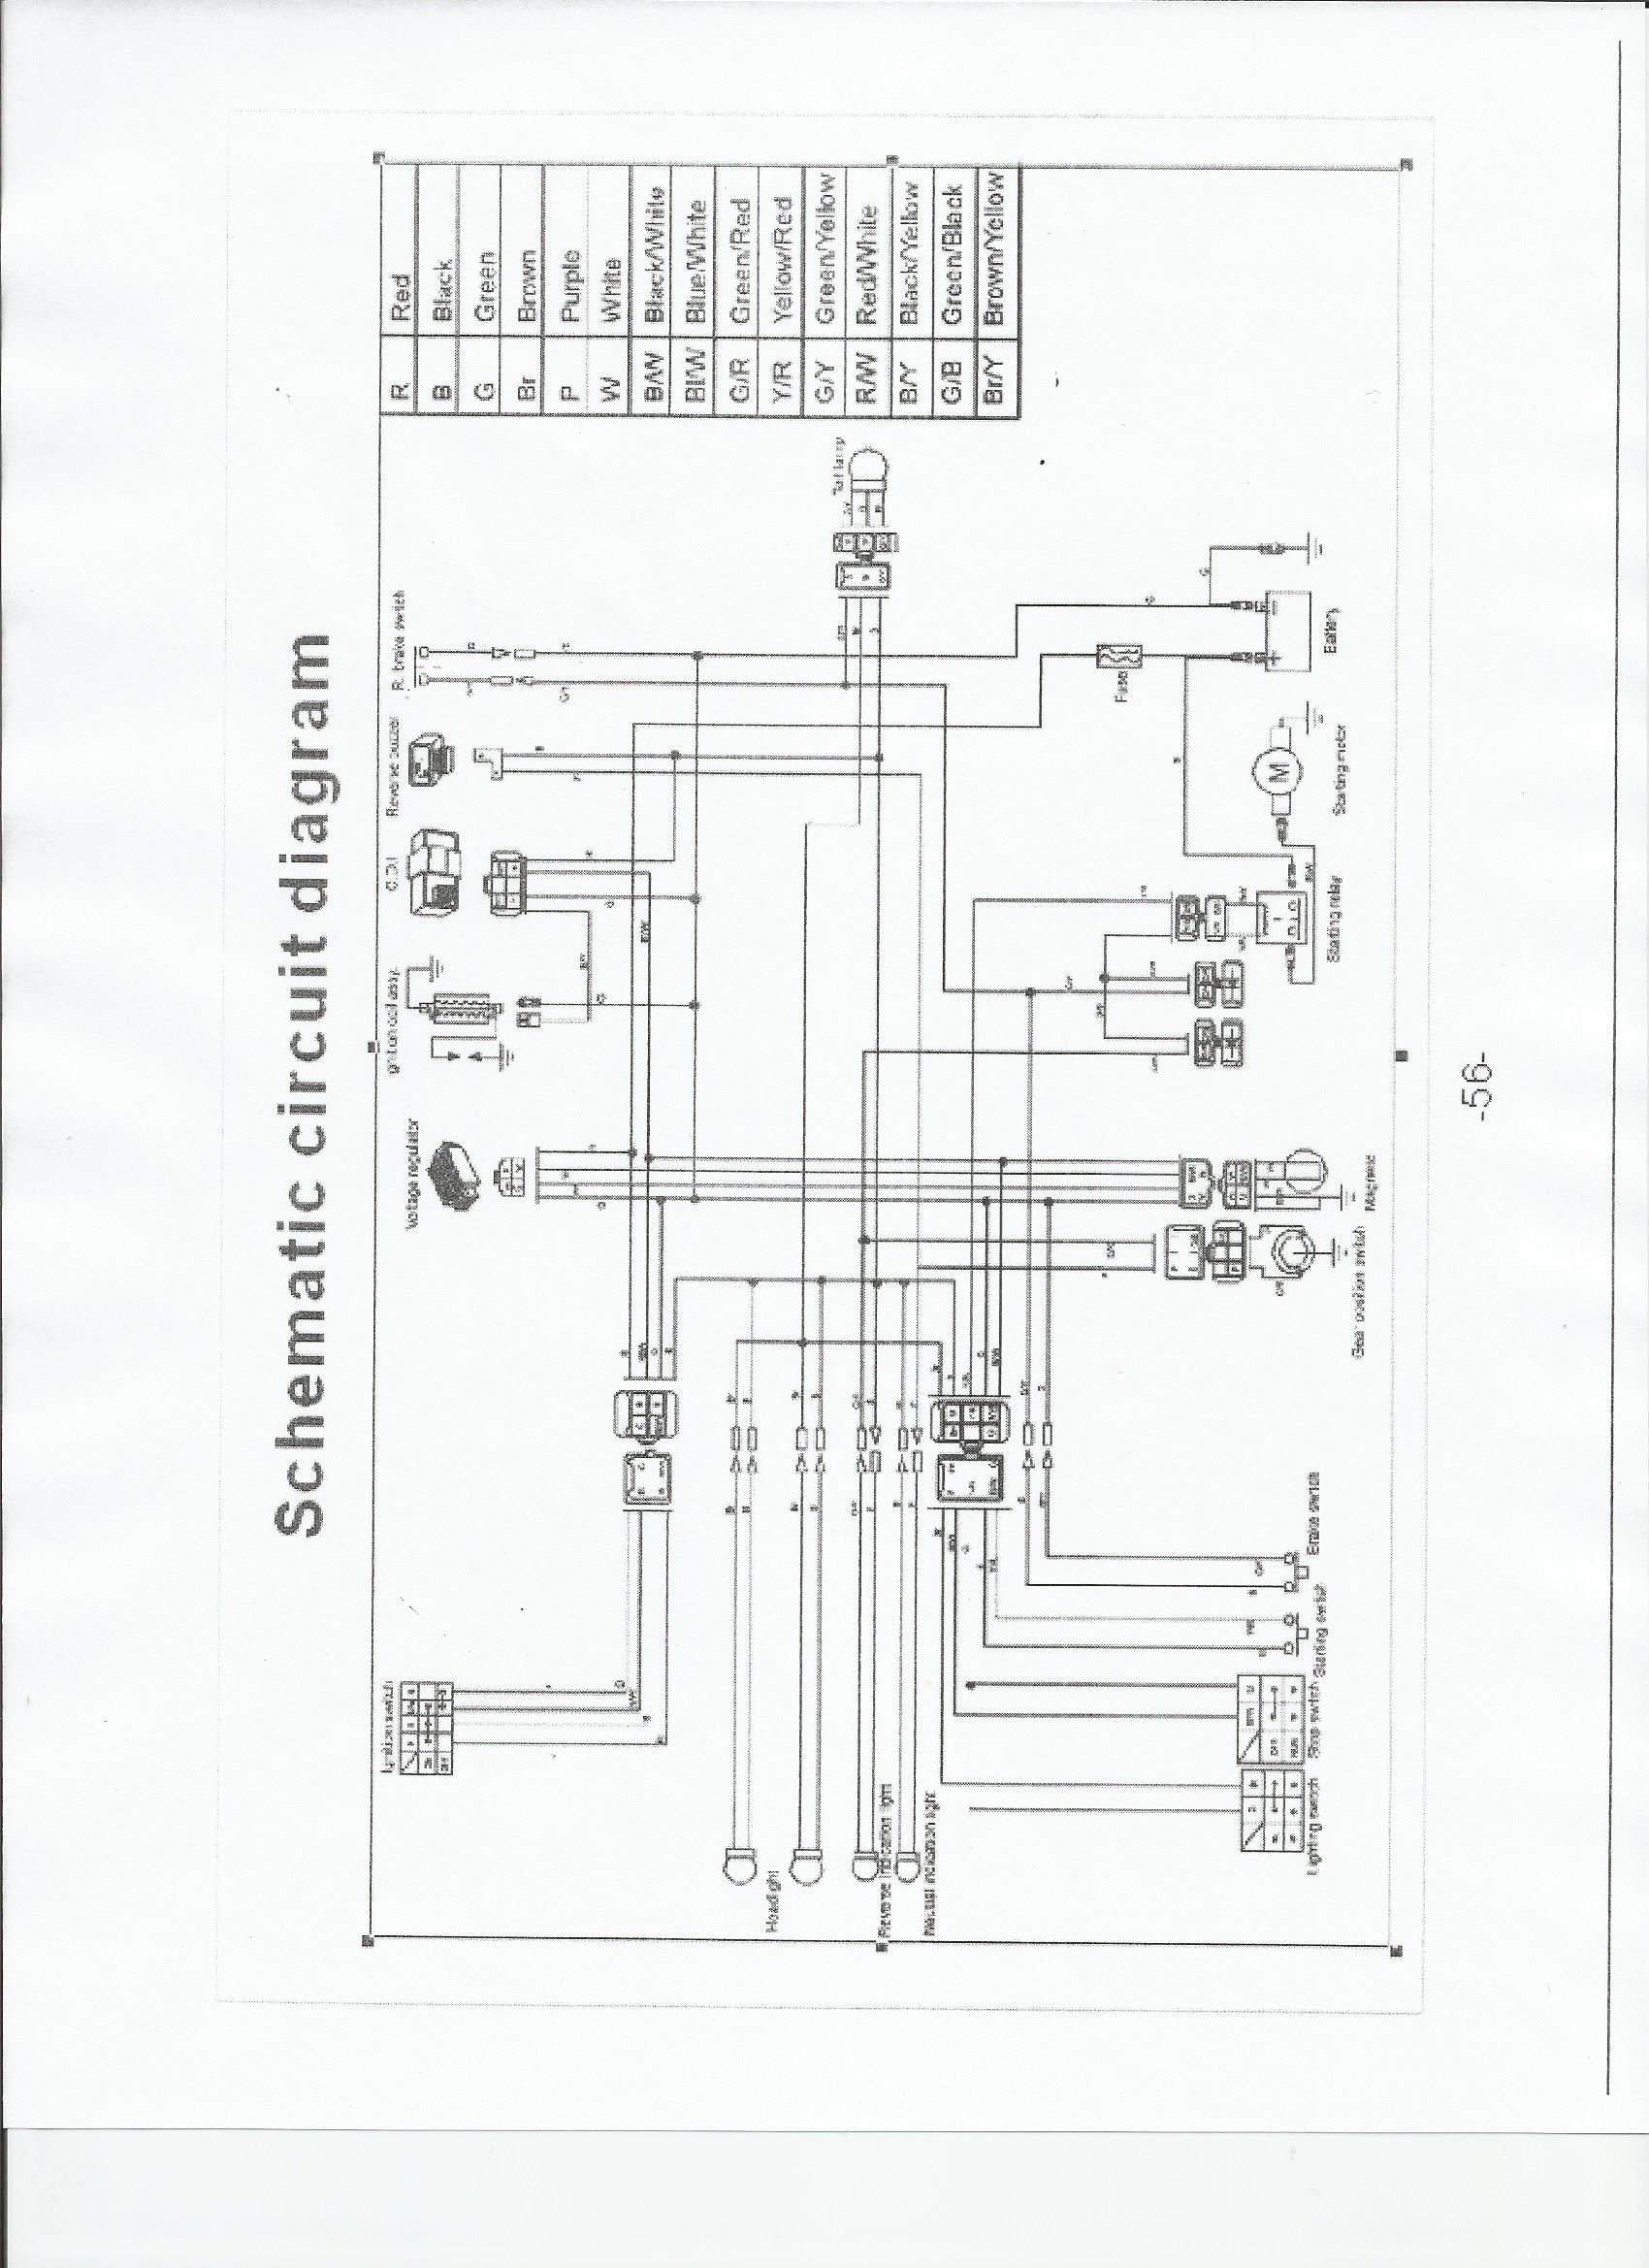 tao tao wiring schematic taotao ata 110h1 wiring diagram chinese go kart wiring diagram taotao scooter parts diagram at bayanpartner.co